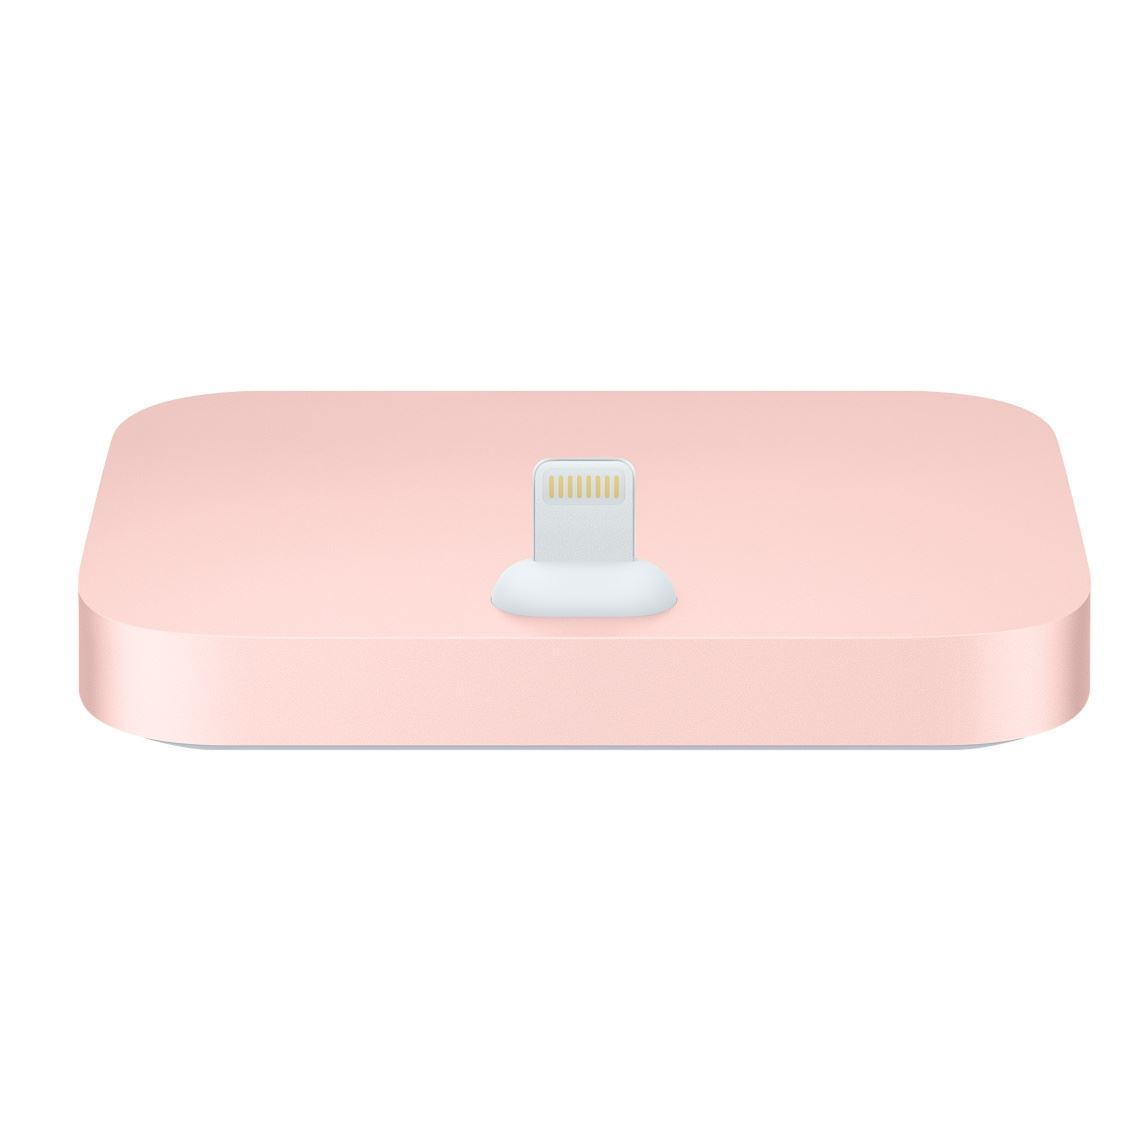 Picture of iPhone Lightning Dock